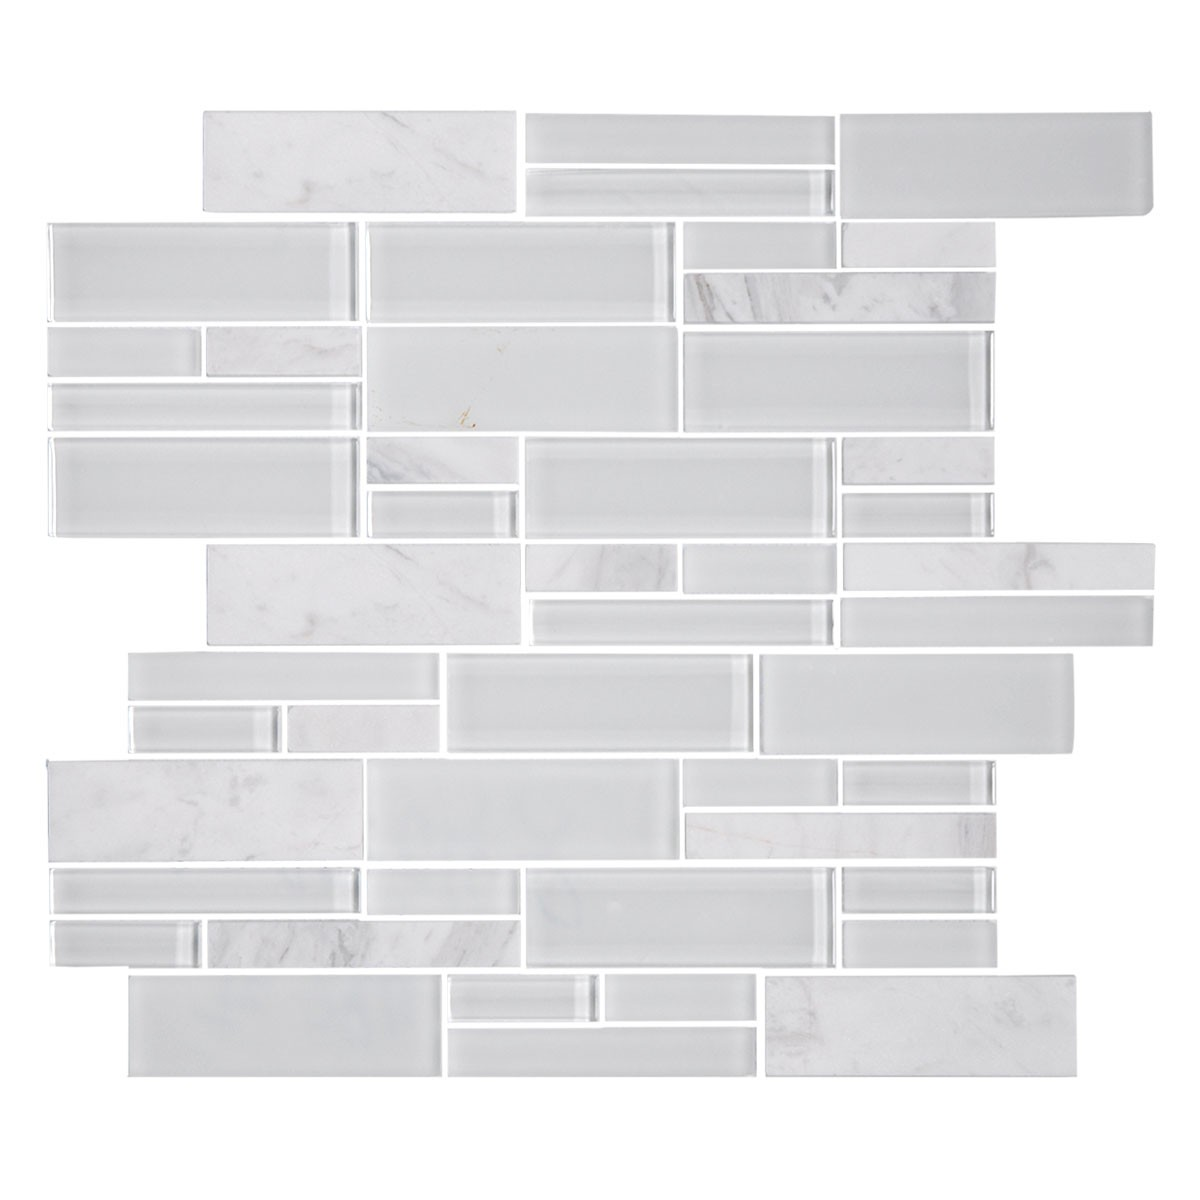 14.2 in. x 11.8 in. Glass Stone Blend Strip Mosaic Tile in Grey - 8mm Thickness (DK-AD805048)